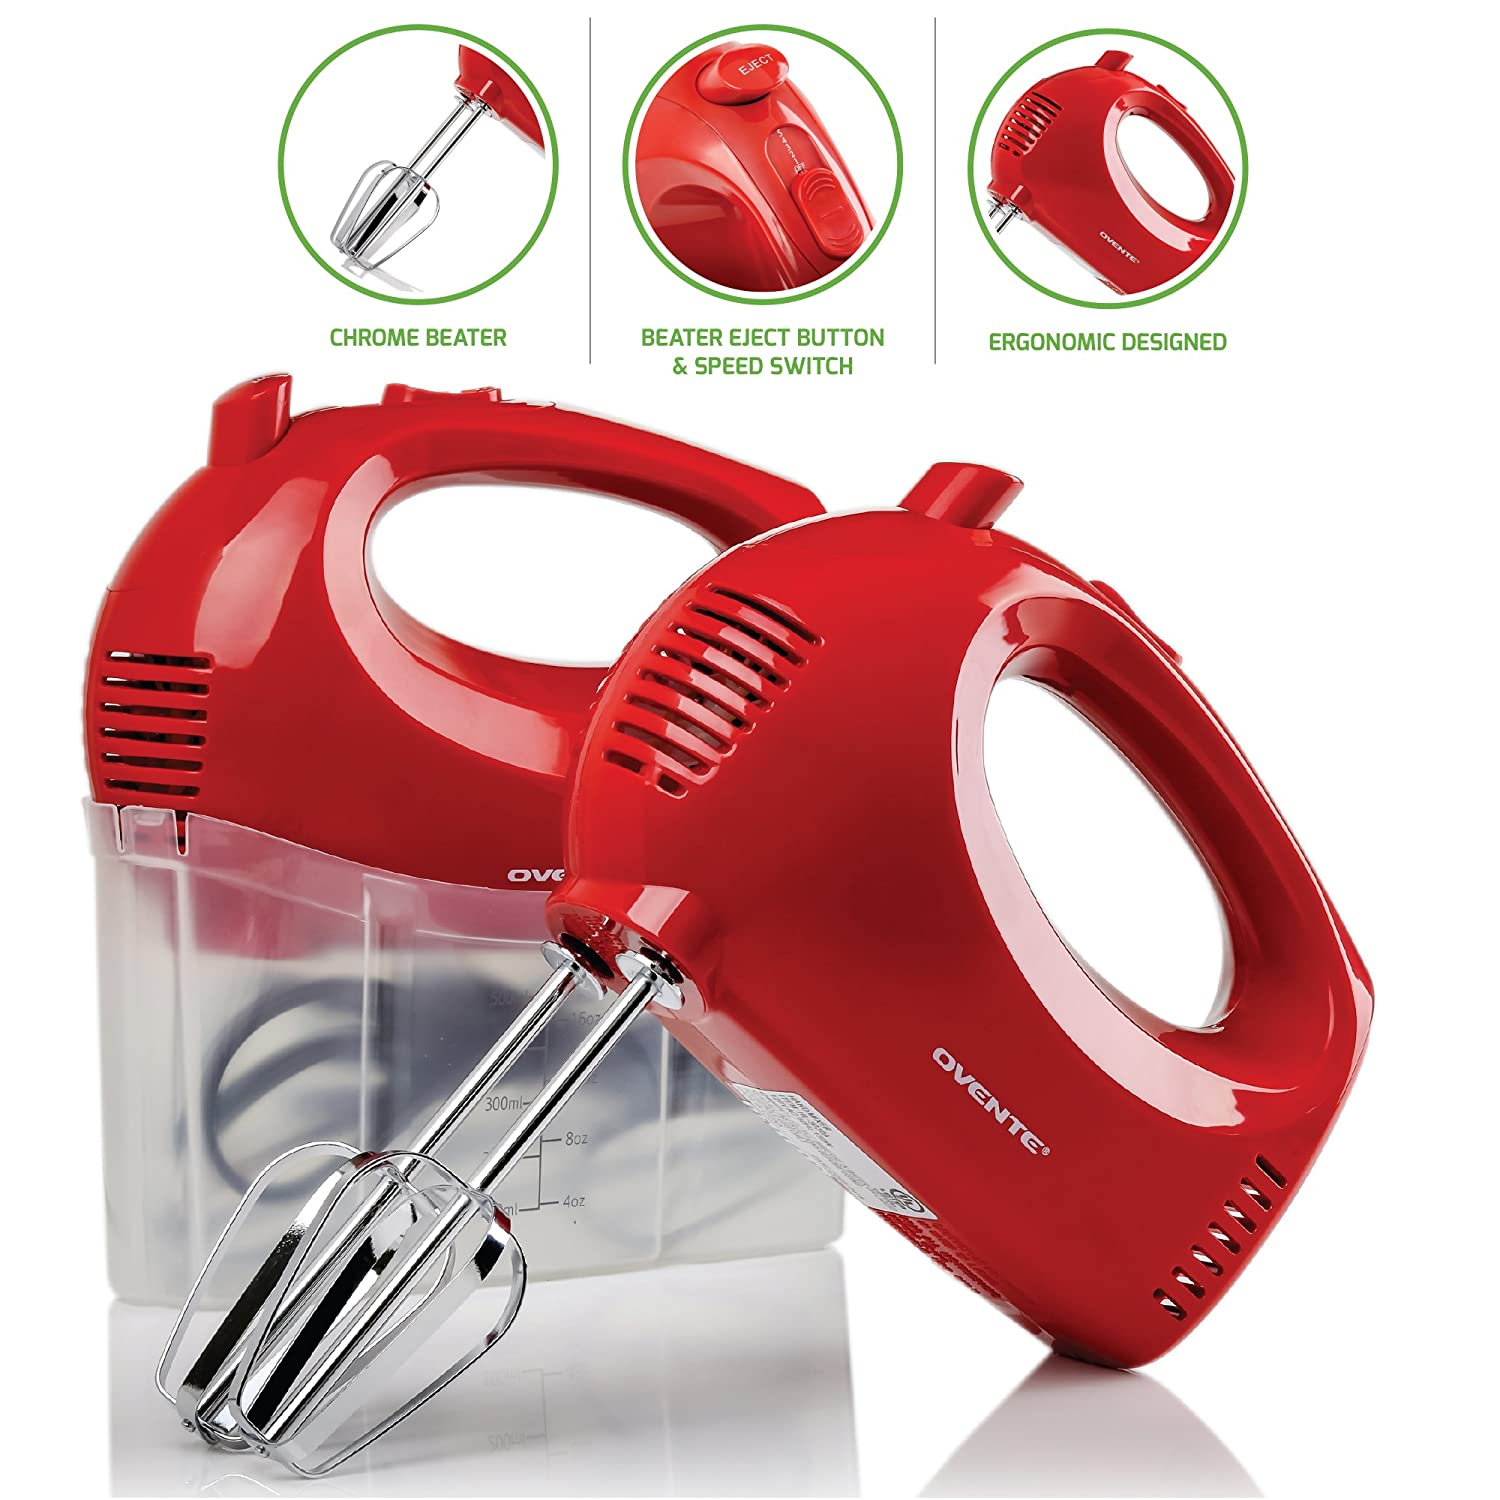 Ovente Electric Hand Mixer, 5 Mixing Speeds, 150W, 2 Stainless Steel Chrome Beaters & Snap-On Storage Case, Cool-Touch Handle, Red (HM151R)